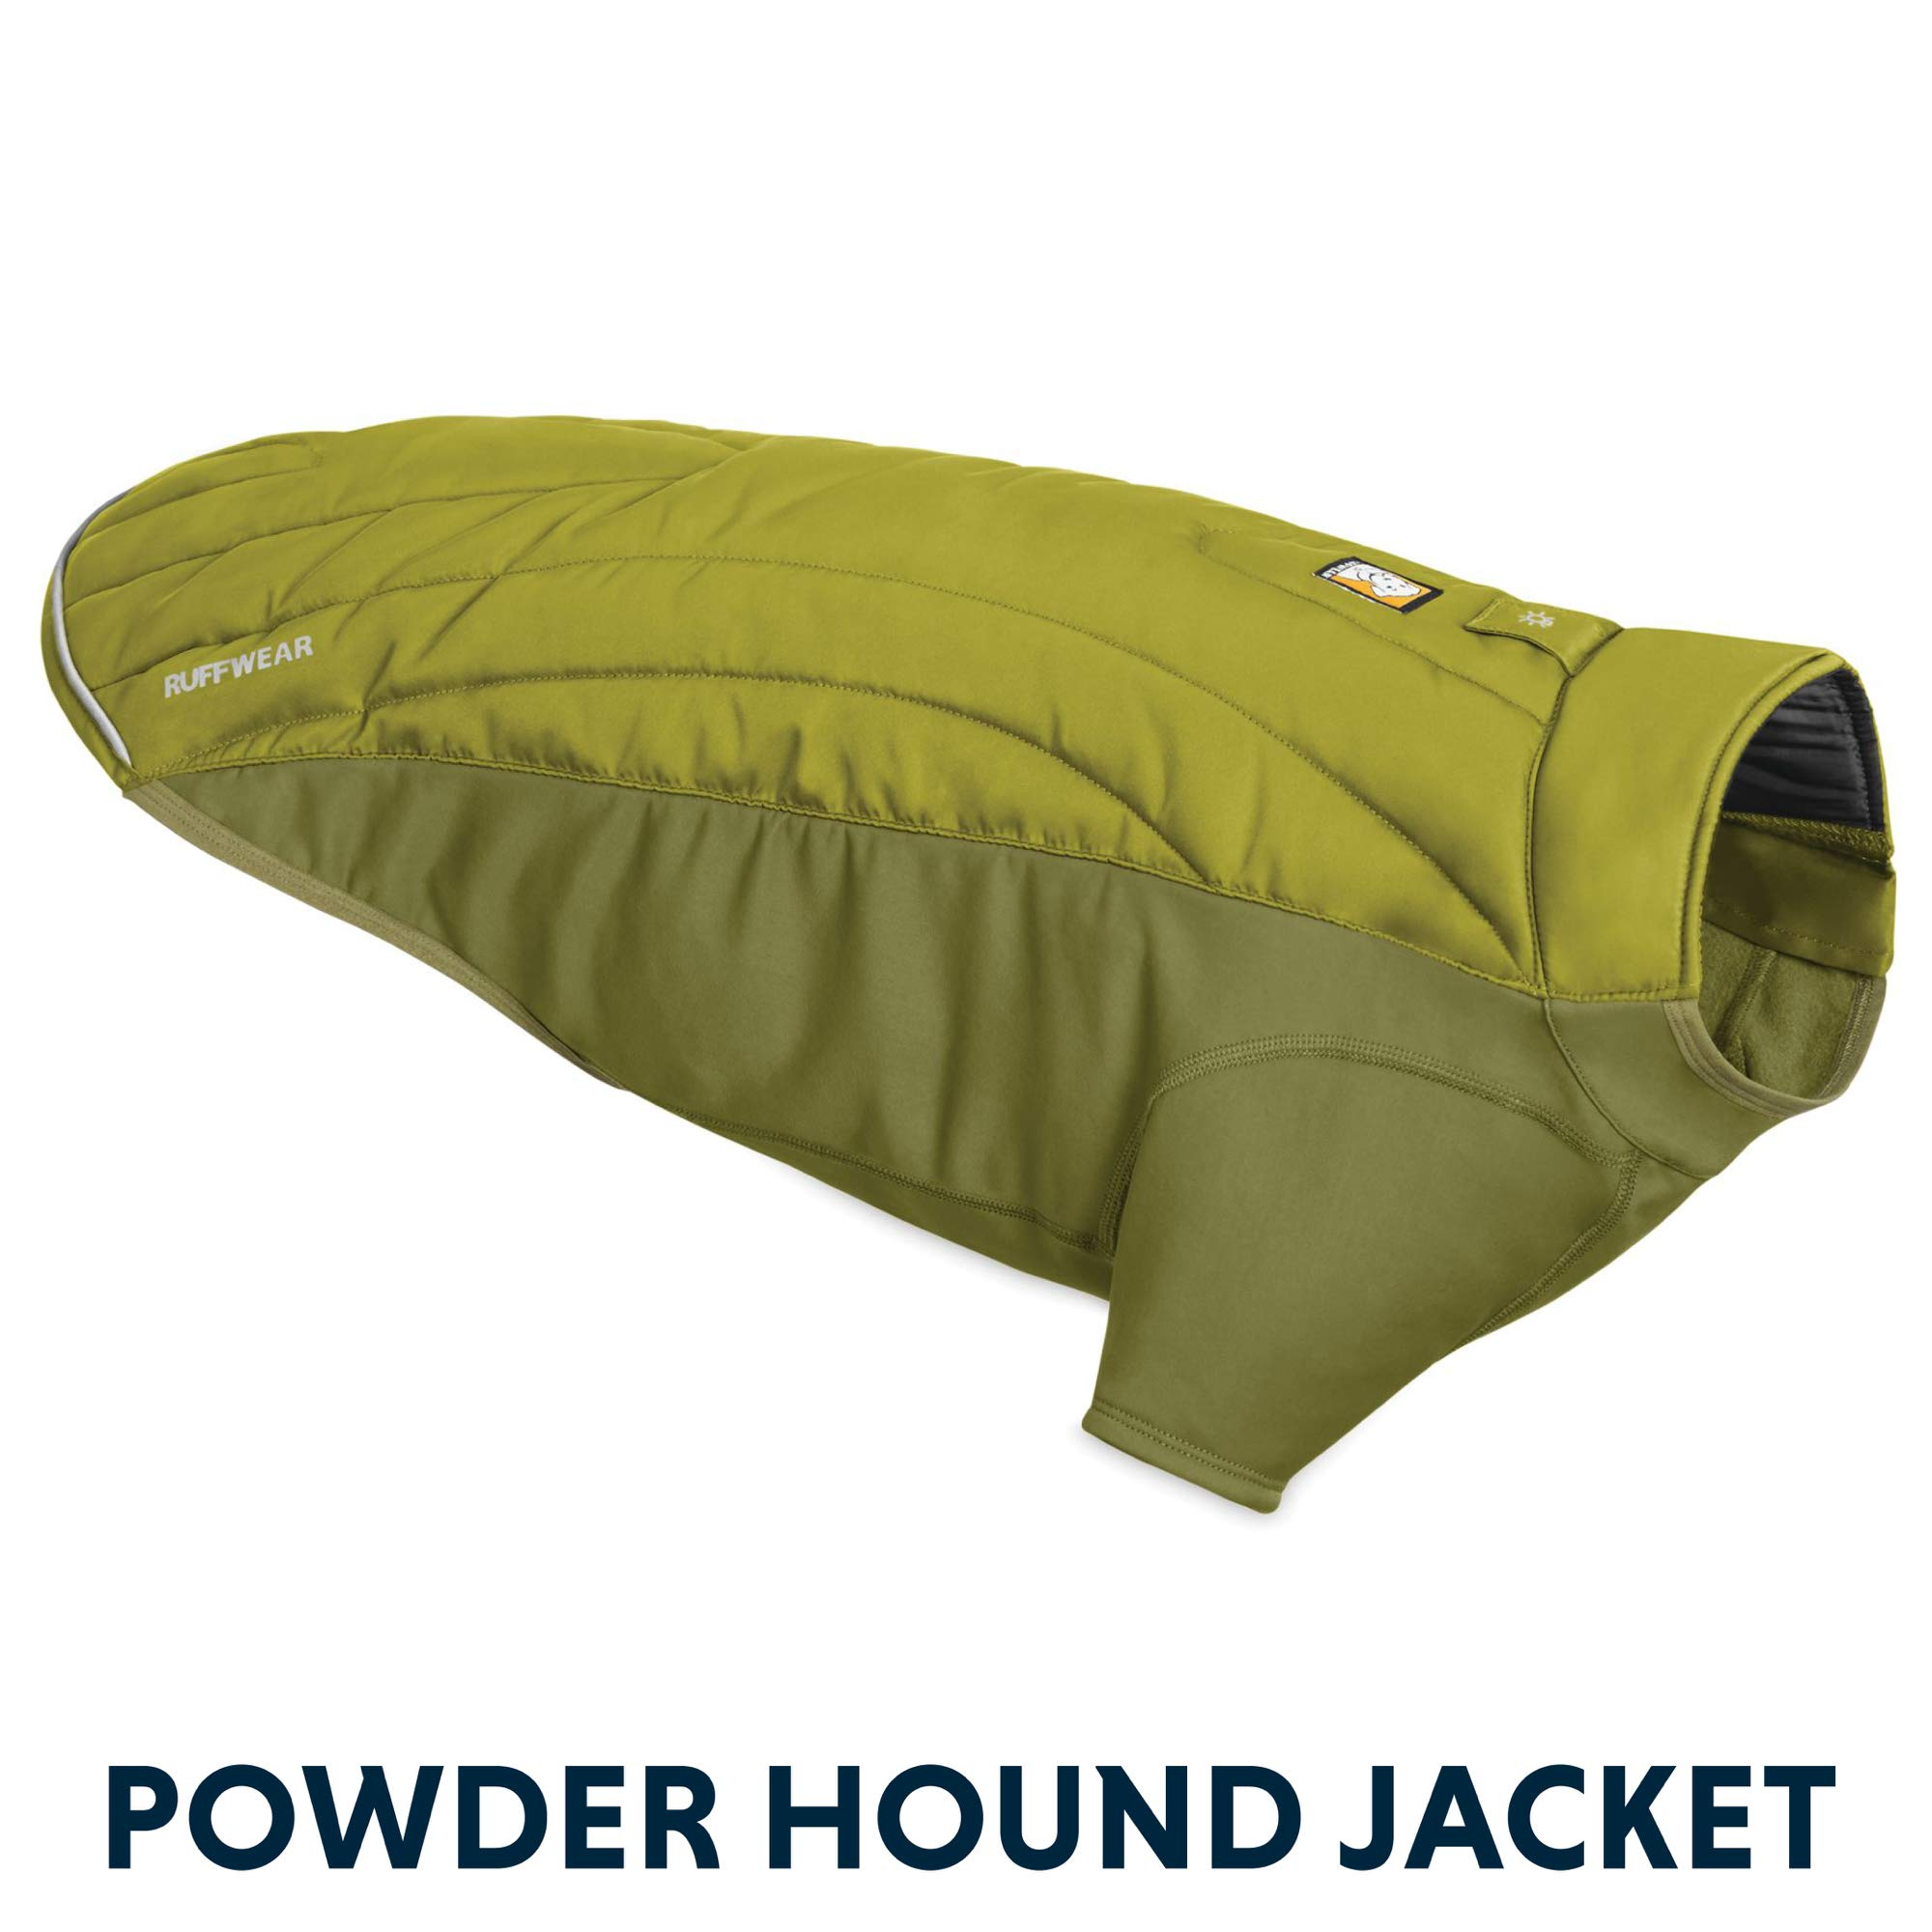 RUFFWEAR - Powder Hound Insulated, Water Resistant Cold Weather Jacket for Dogs, Forest Green, Medium by RUFFWEAR